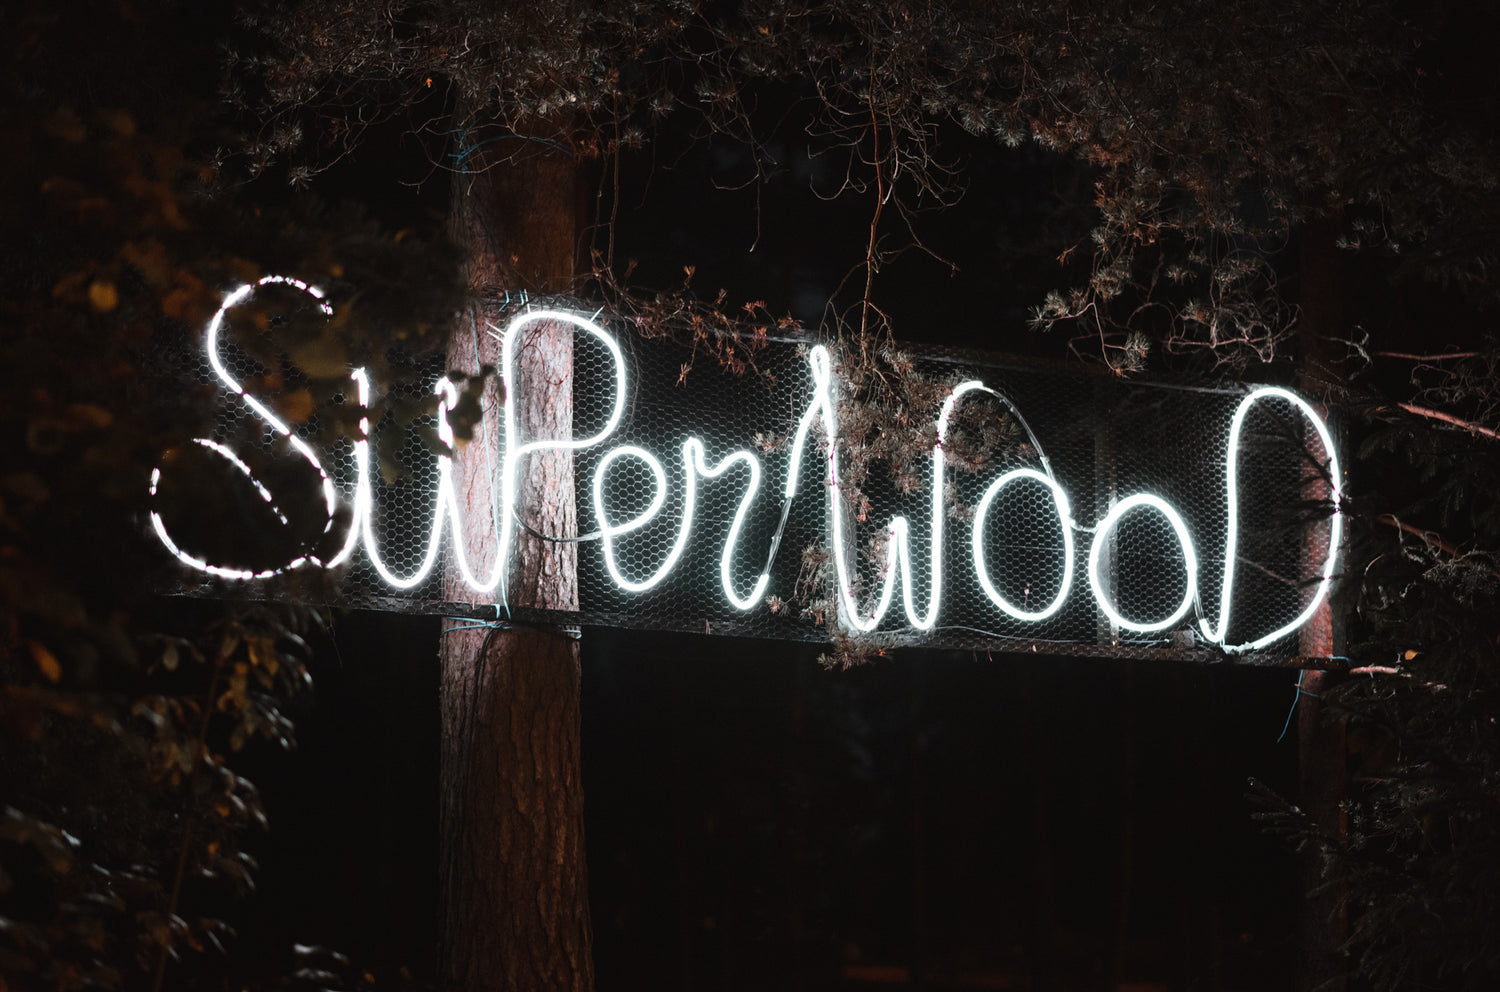 Superwood 2021 ticket: Sleepover SAT 2.10.2021